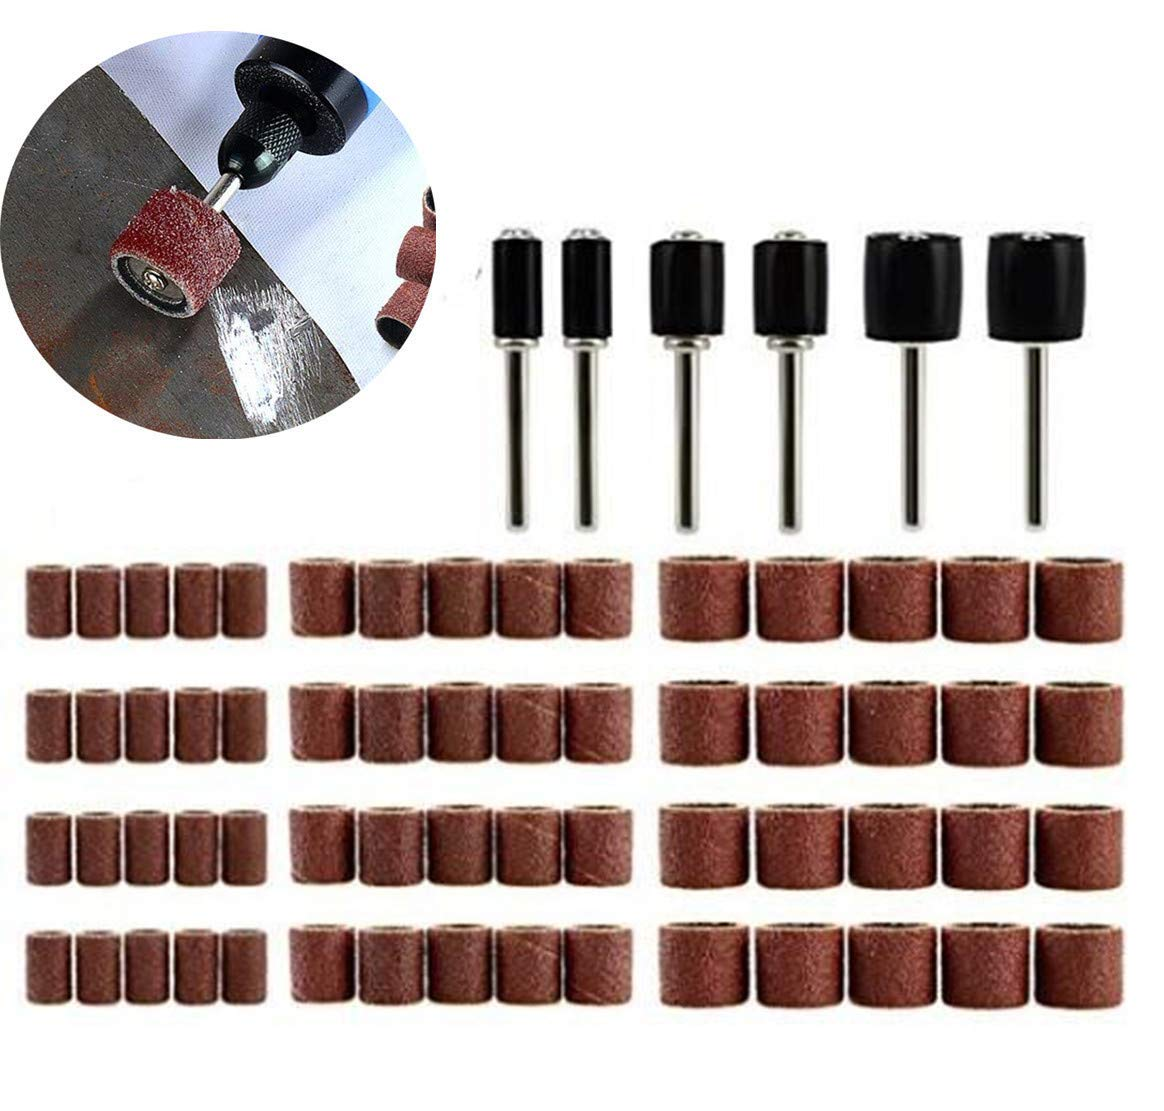 66 Pcs Sanding Drum Set, 60 Pcs 120 Grit Sanding Band Sleeves 1/4 3/8 1/2 inch with 6 Pcs Drum Mandrels for Dremel Rotary Tool